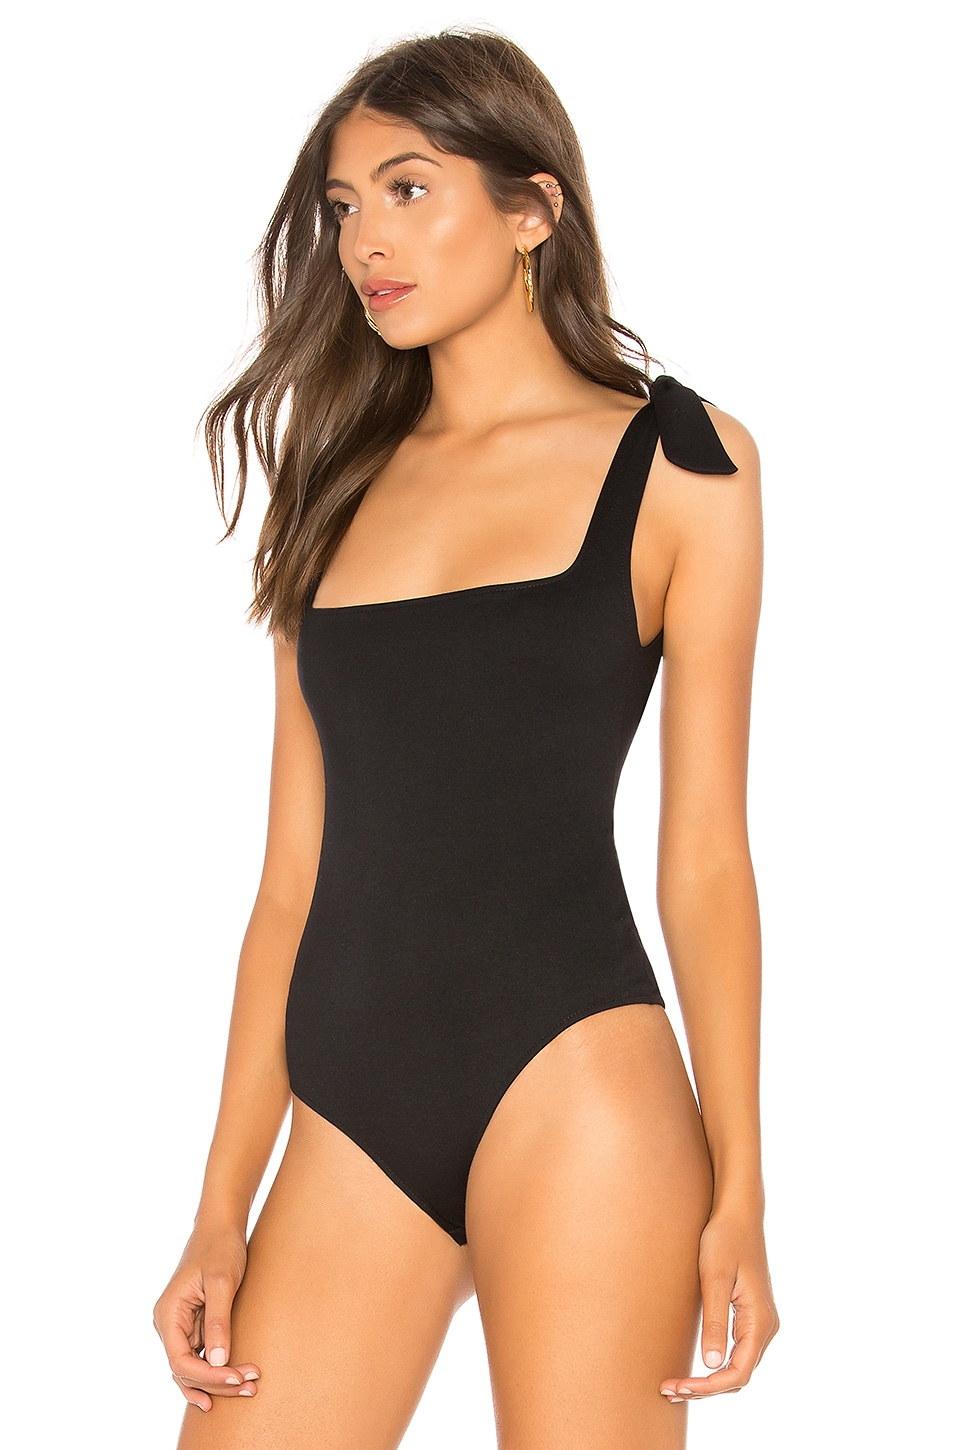 Tie Shoulder Bodysuit, view 3, click to view large image.